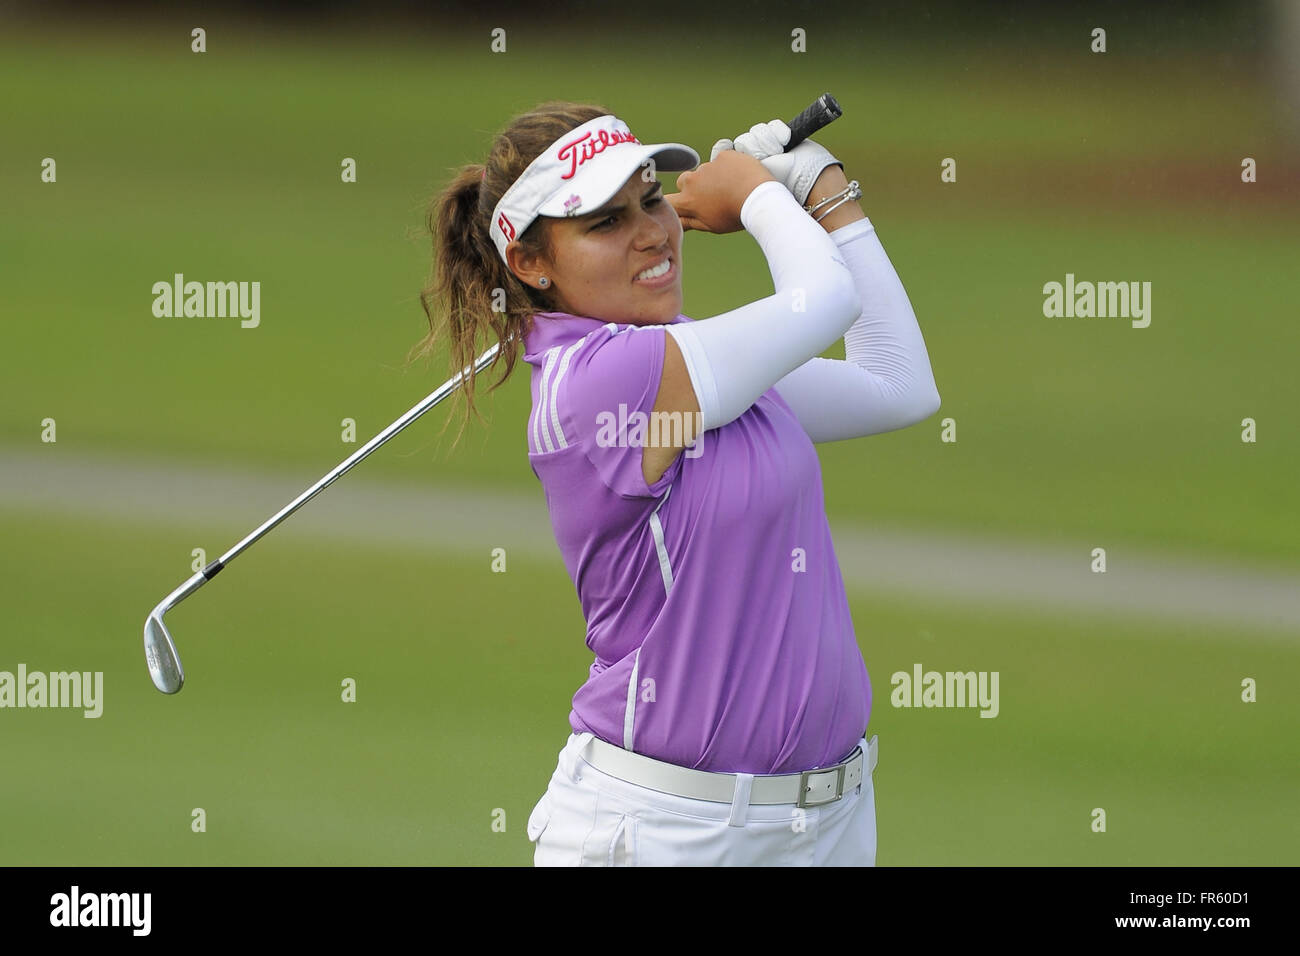 Fort Myers, Florida, USA. 17th Apr, 2015. Alejandra Cangrejo during the second round of the Symetra Tour's Chico's - Stock Image